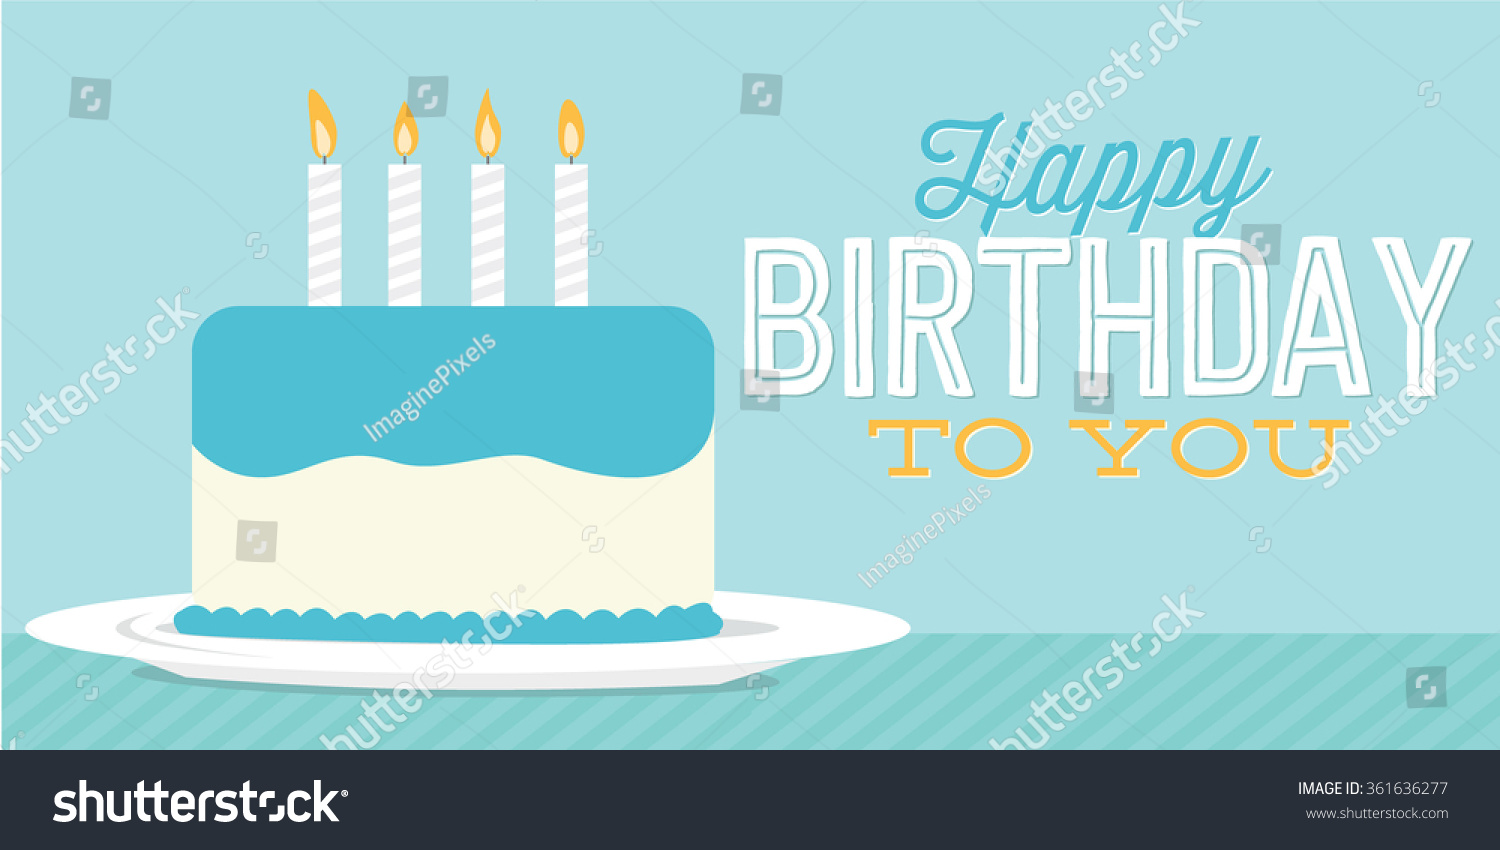 Happy Birthday To You Cake Banner Vector